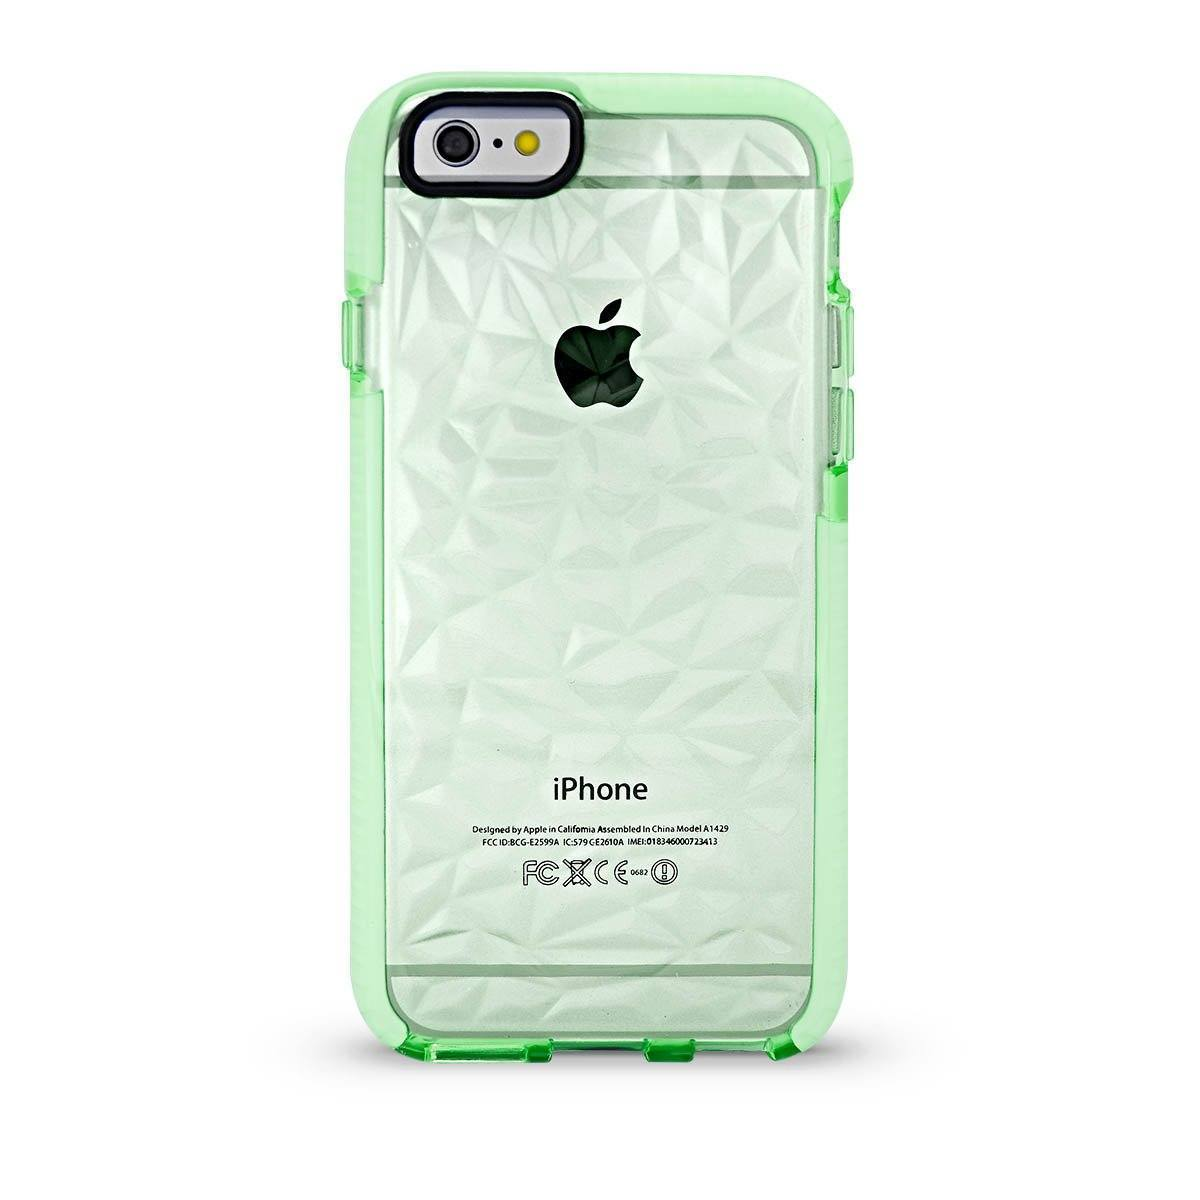 Elastic Crystal Case for iPhone 6 - Light Green